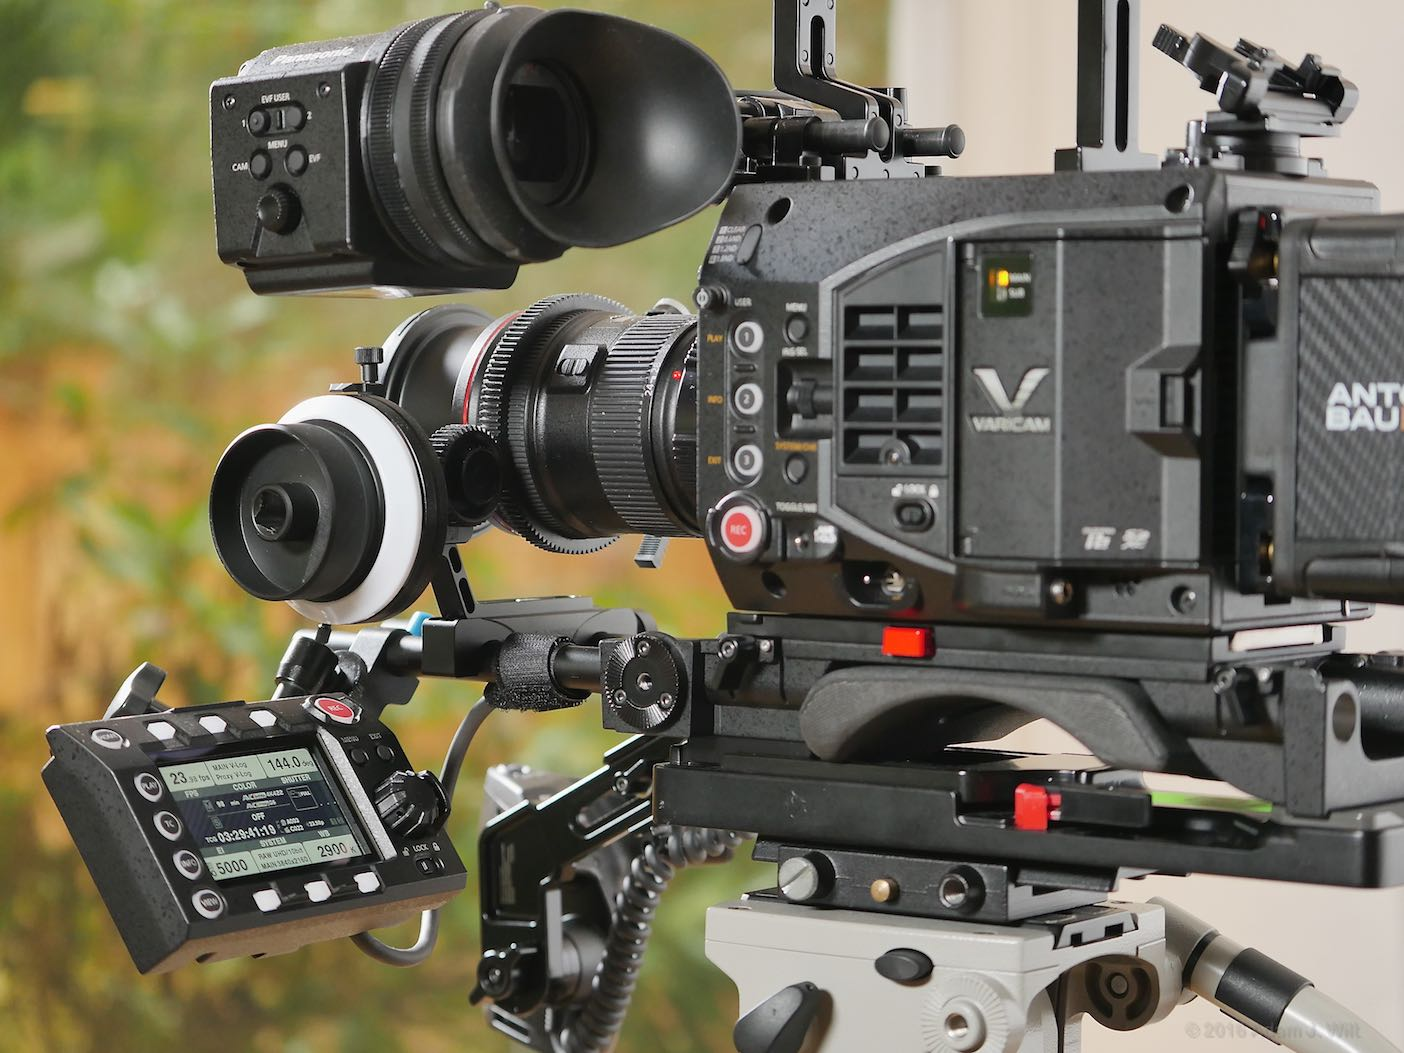 VariCam LT with control panel on front rod mount